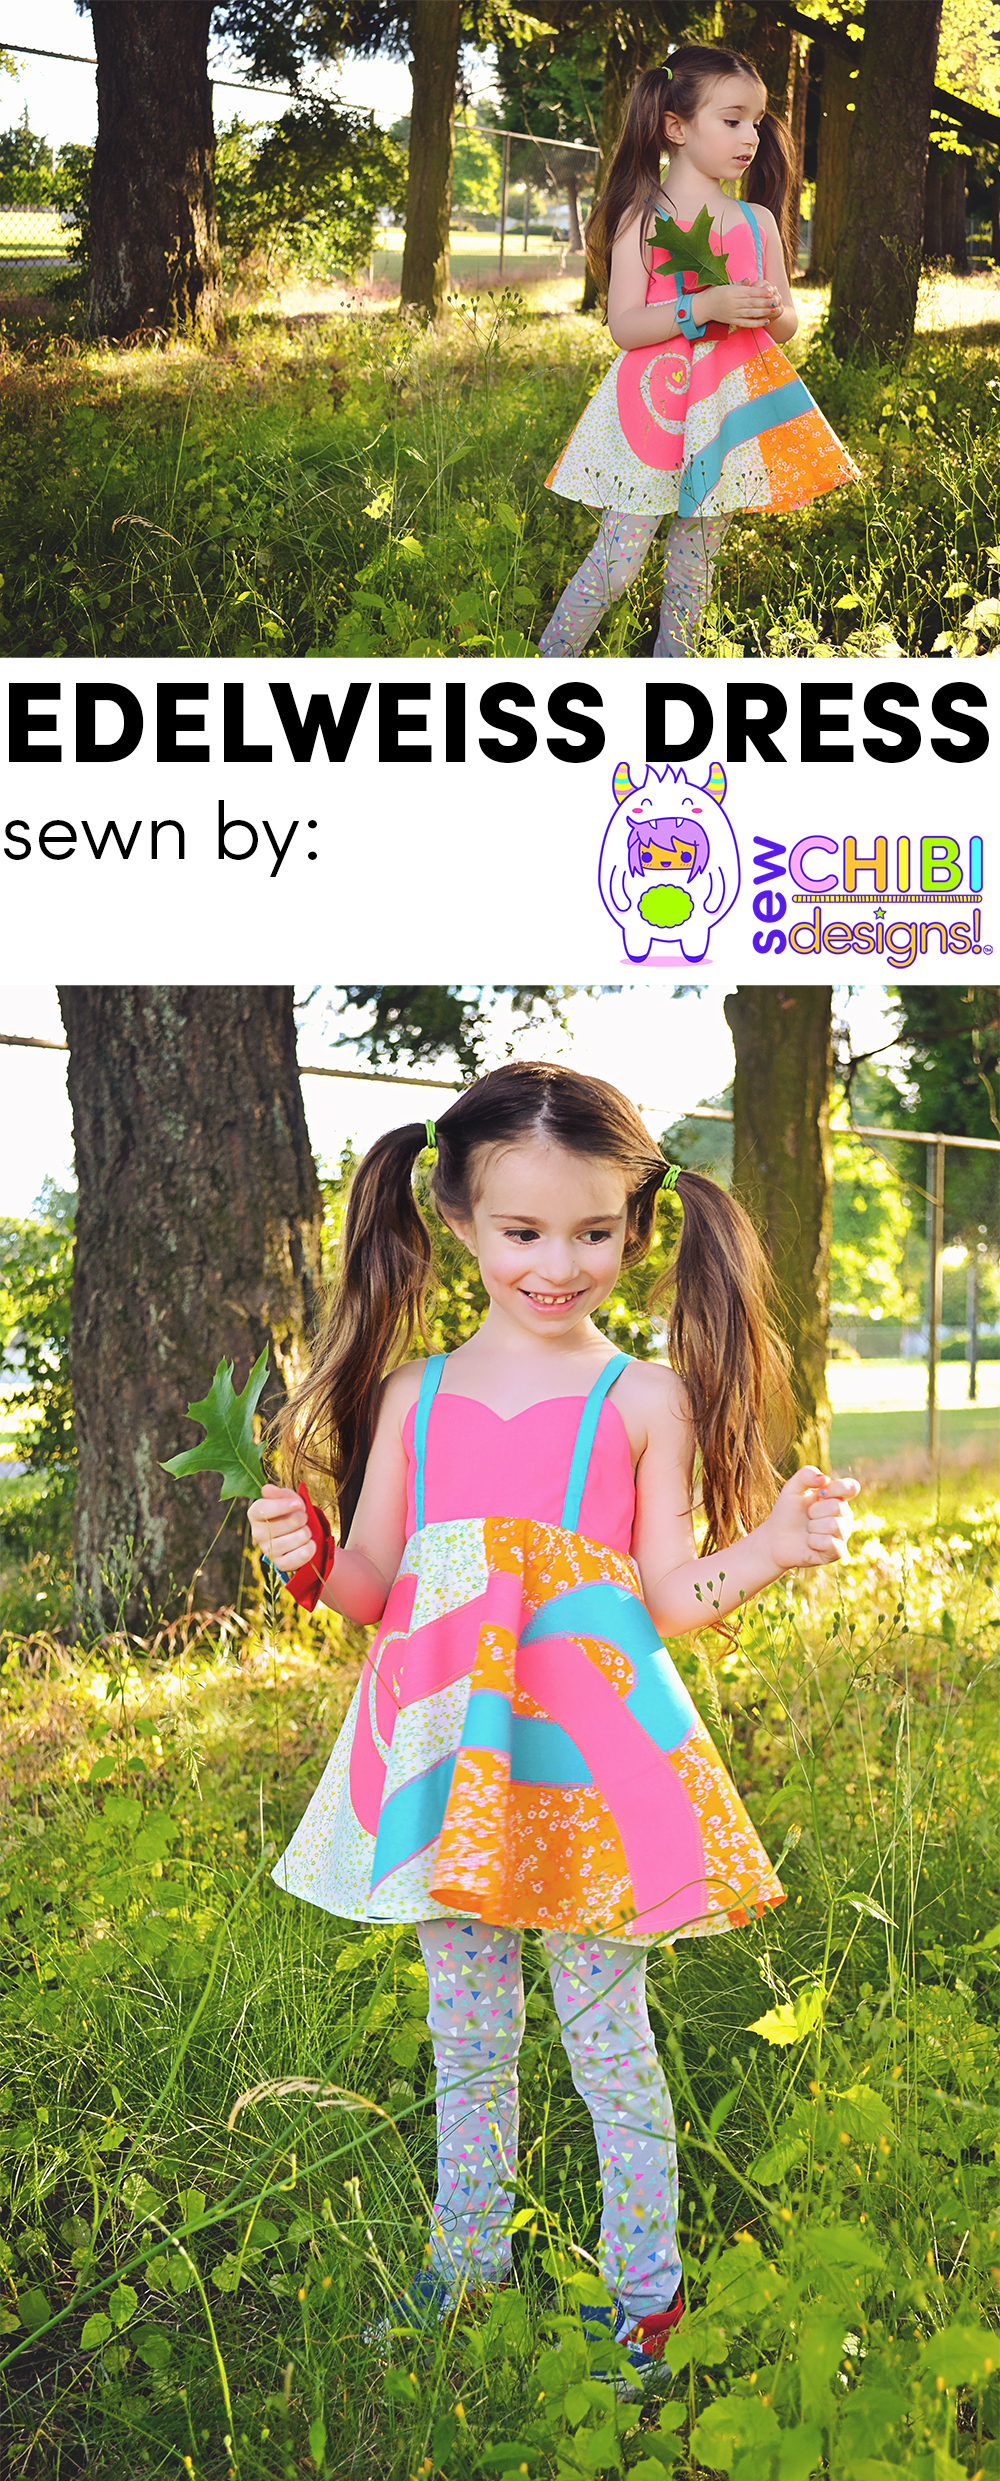 edelweiss dress pdf pattern